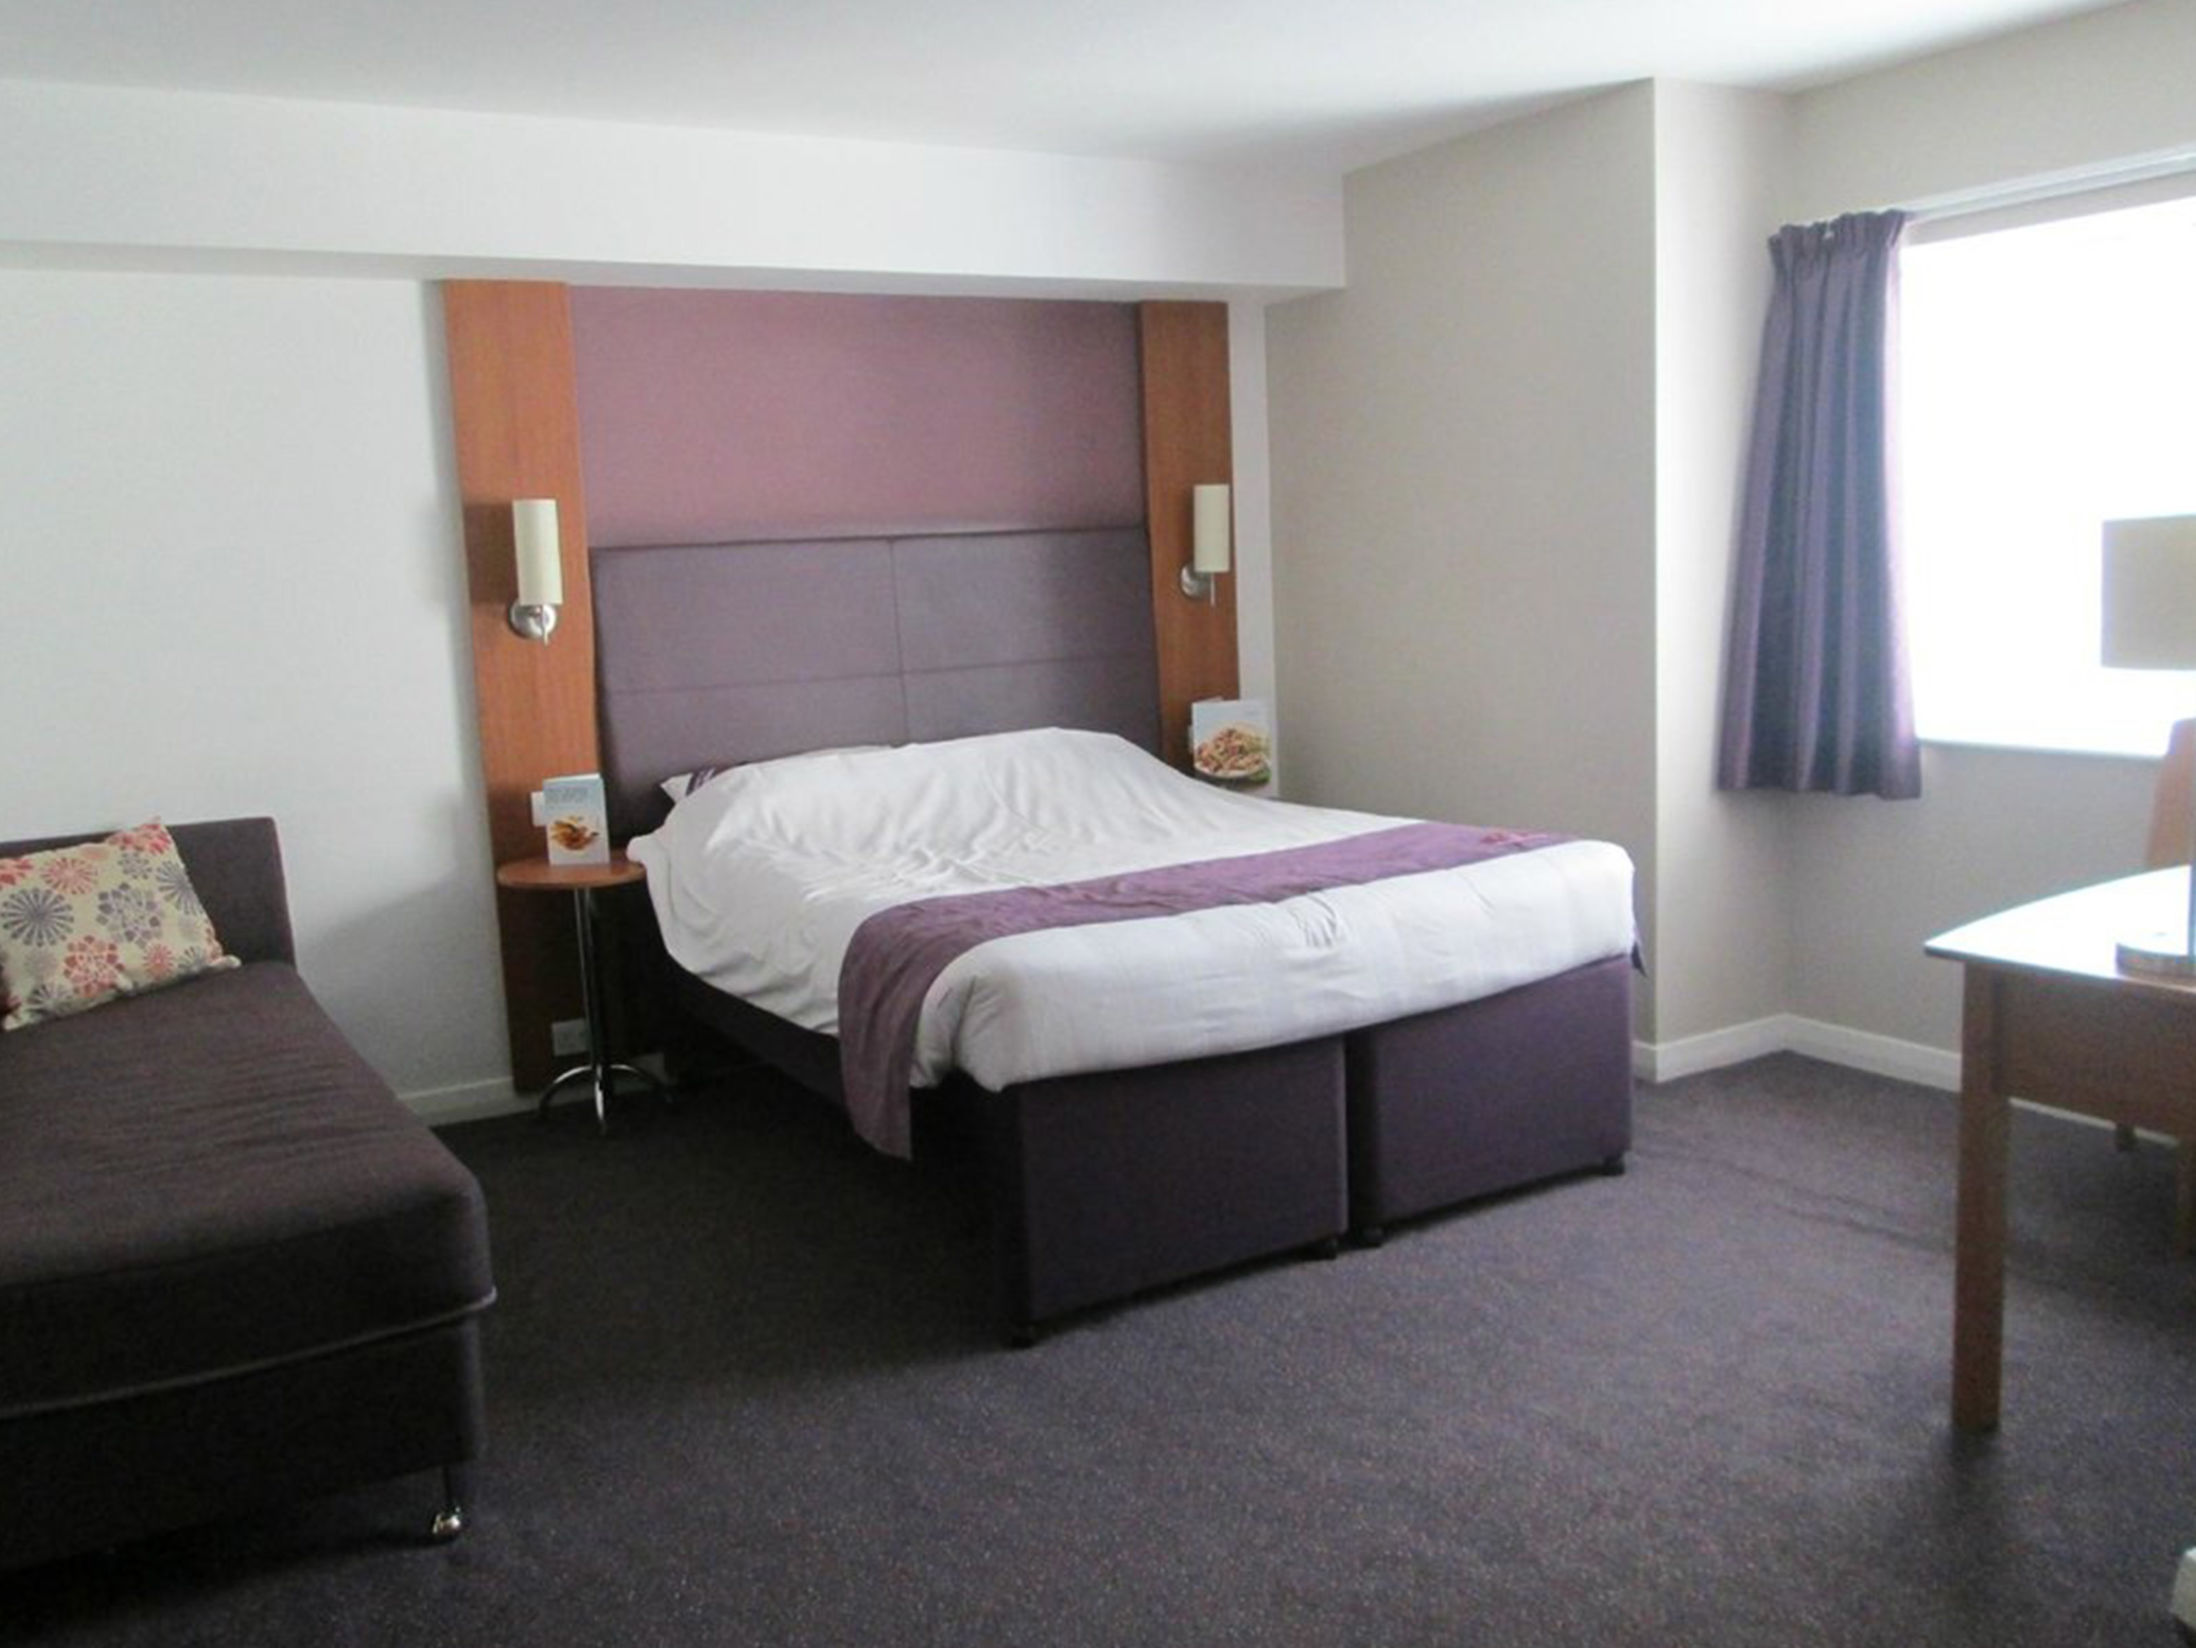 Best Hotels in Cardiff City Centre - Premier Inn Cardiff City Centre